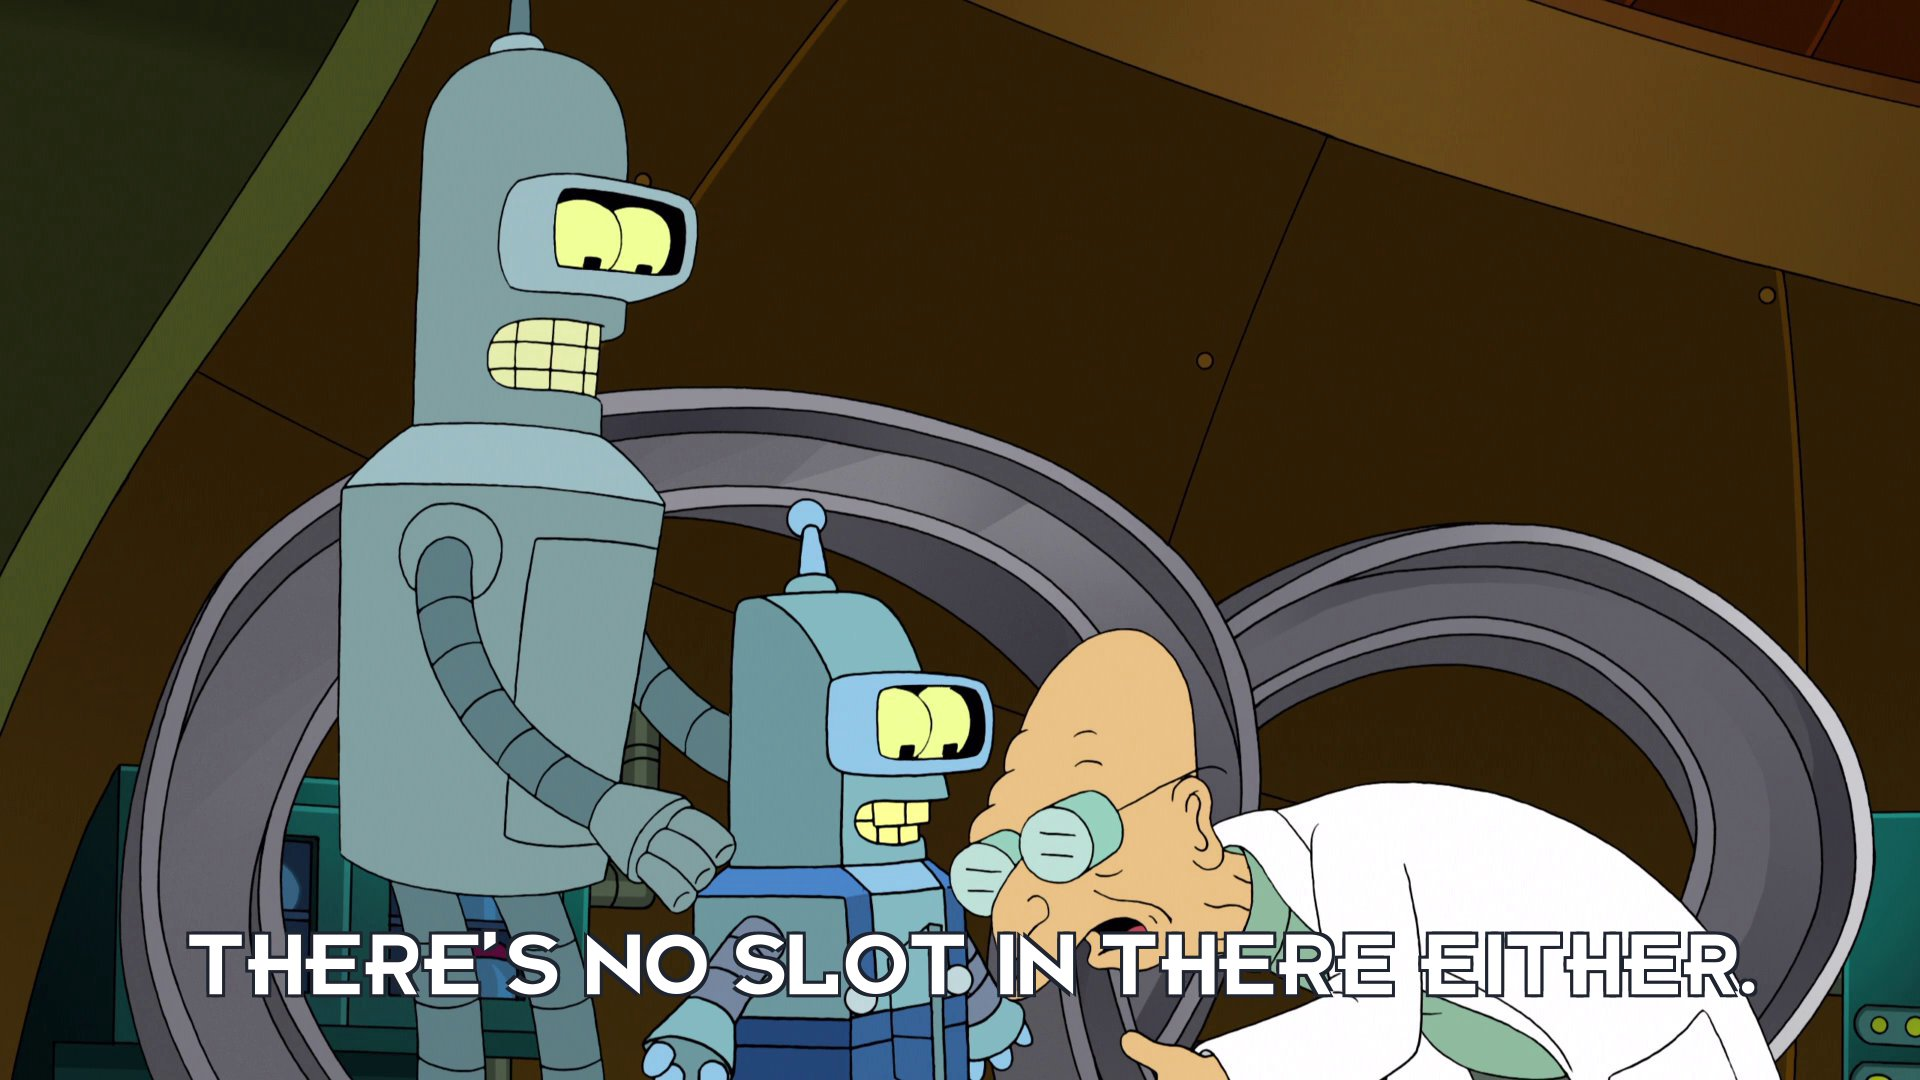 Prof Hubert J Farnsworth: There's no slot in there either.